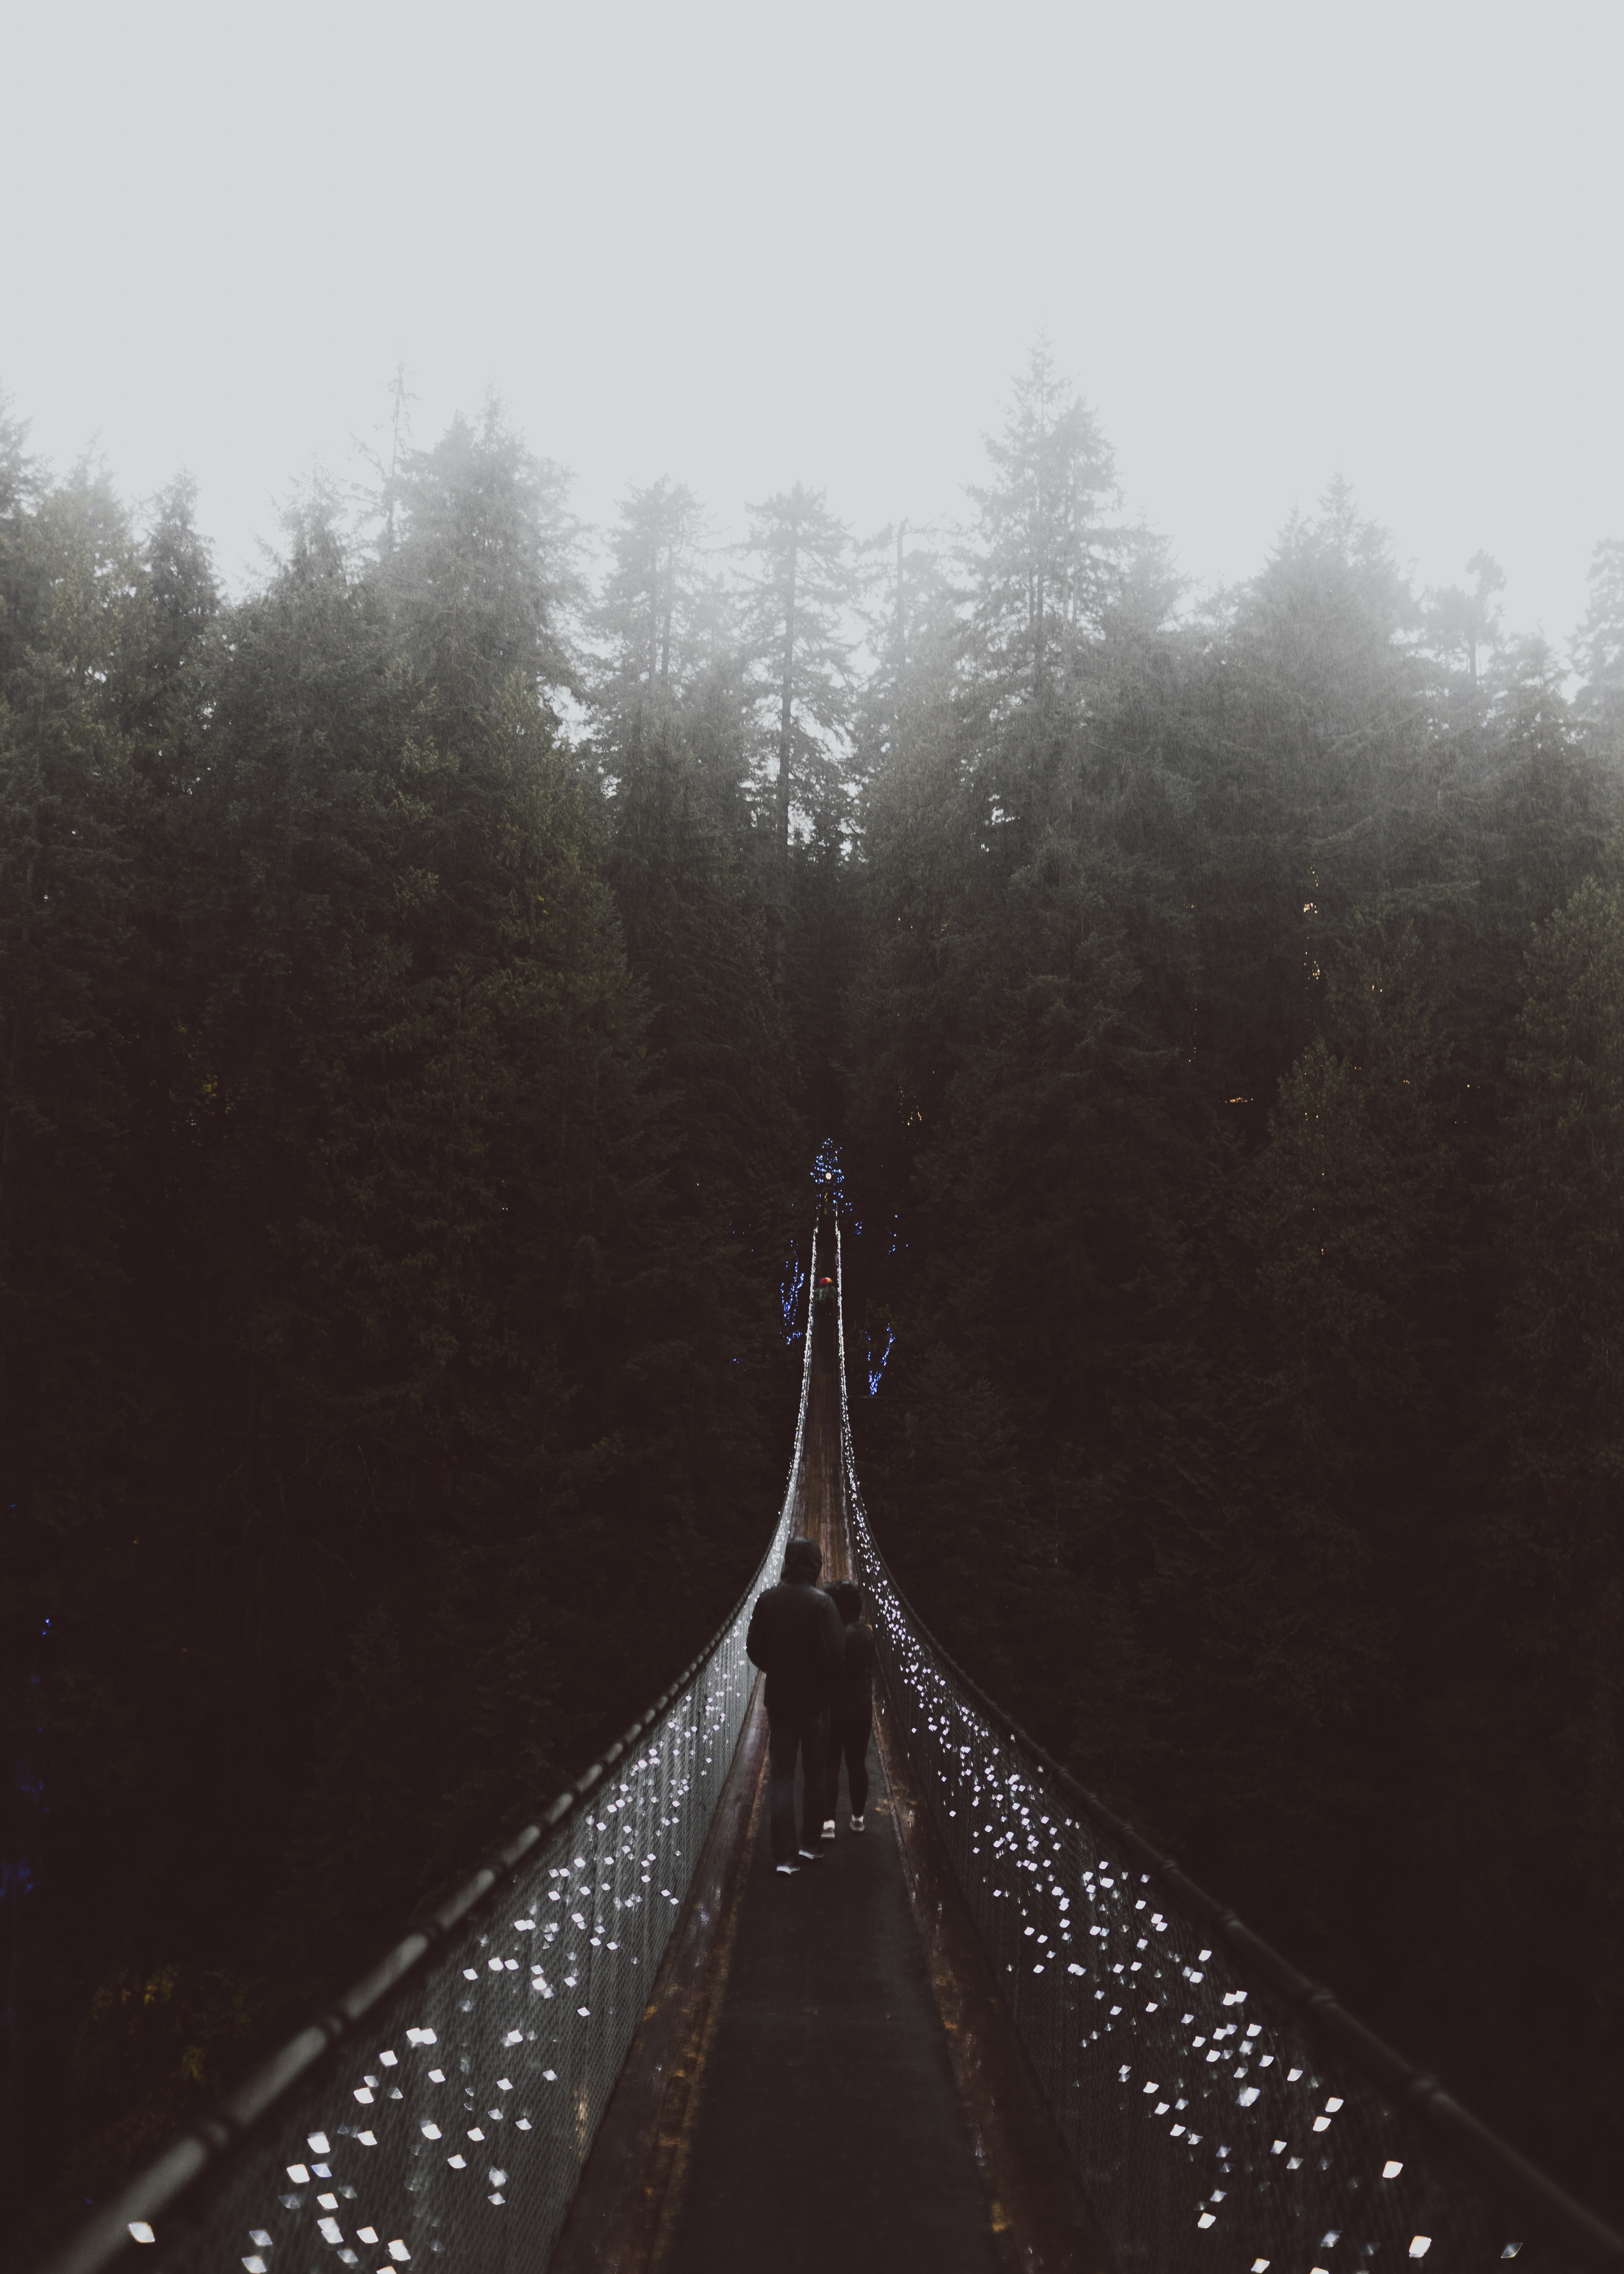 two person walking on suspension bridge taken at foggy morning